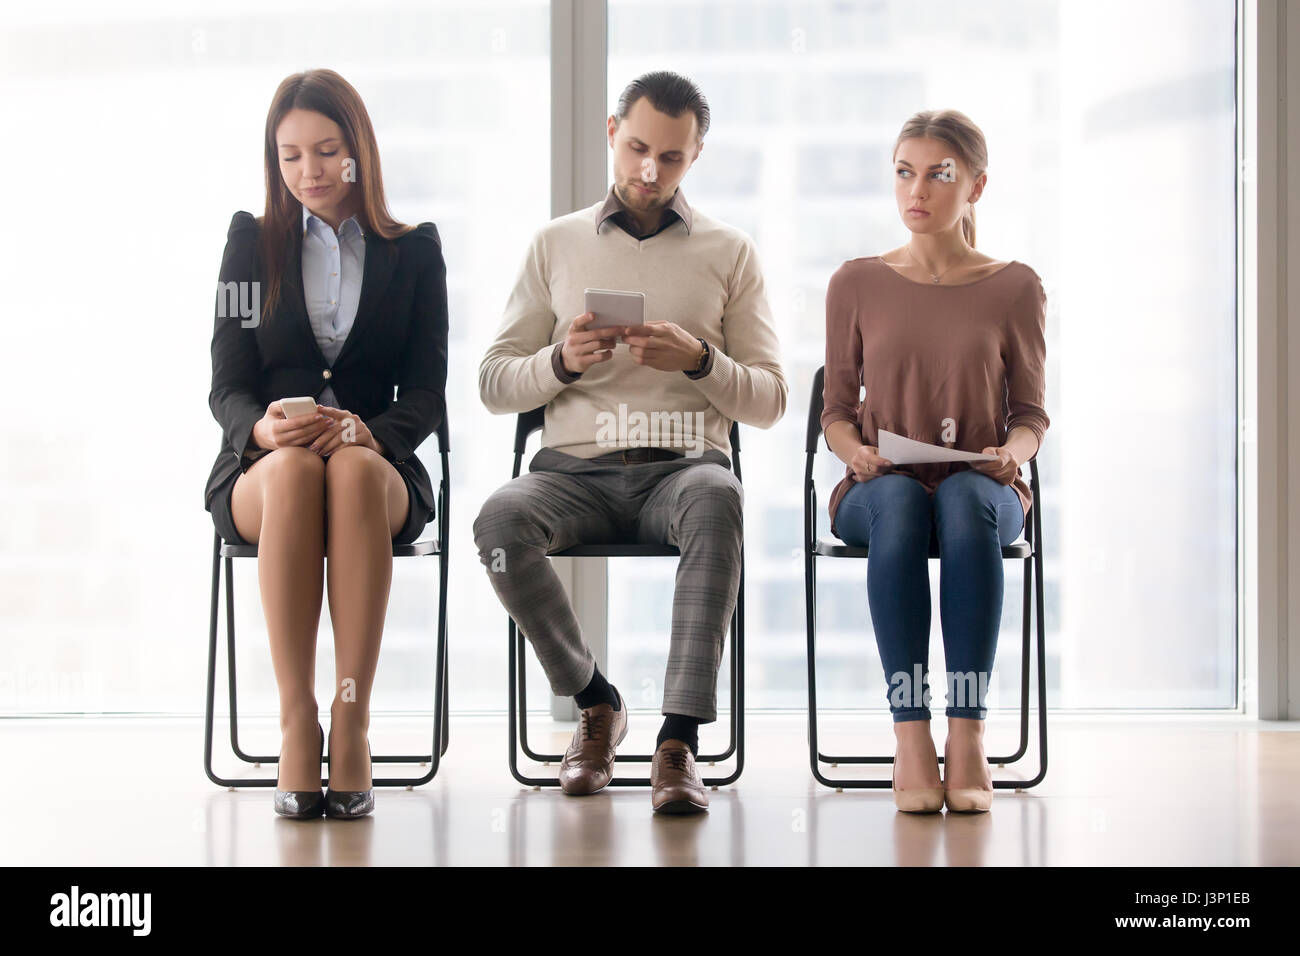 Bored people sitting on chairs waiting for a long time  - Stock Image